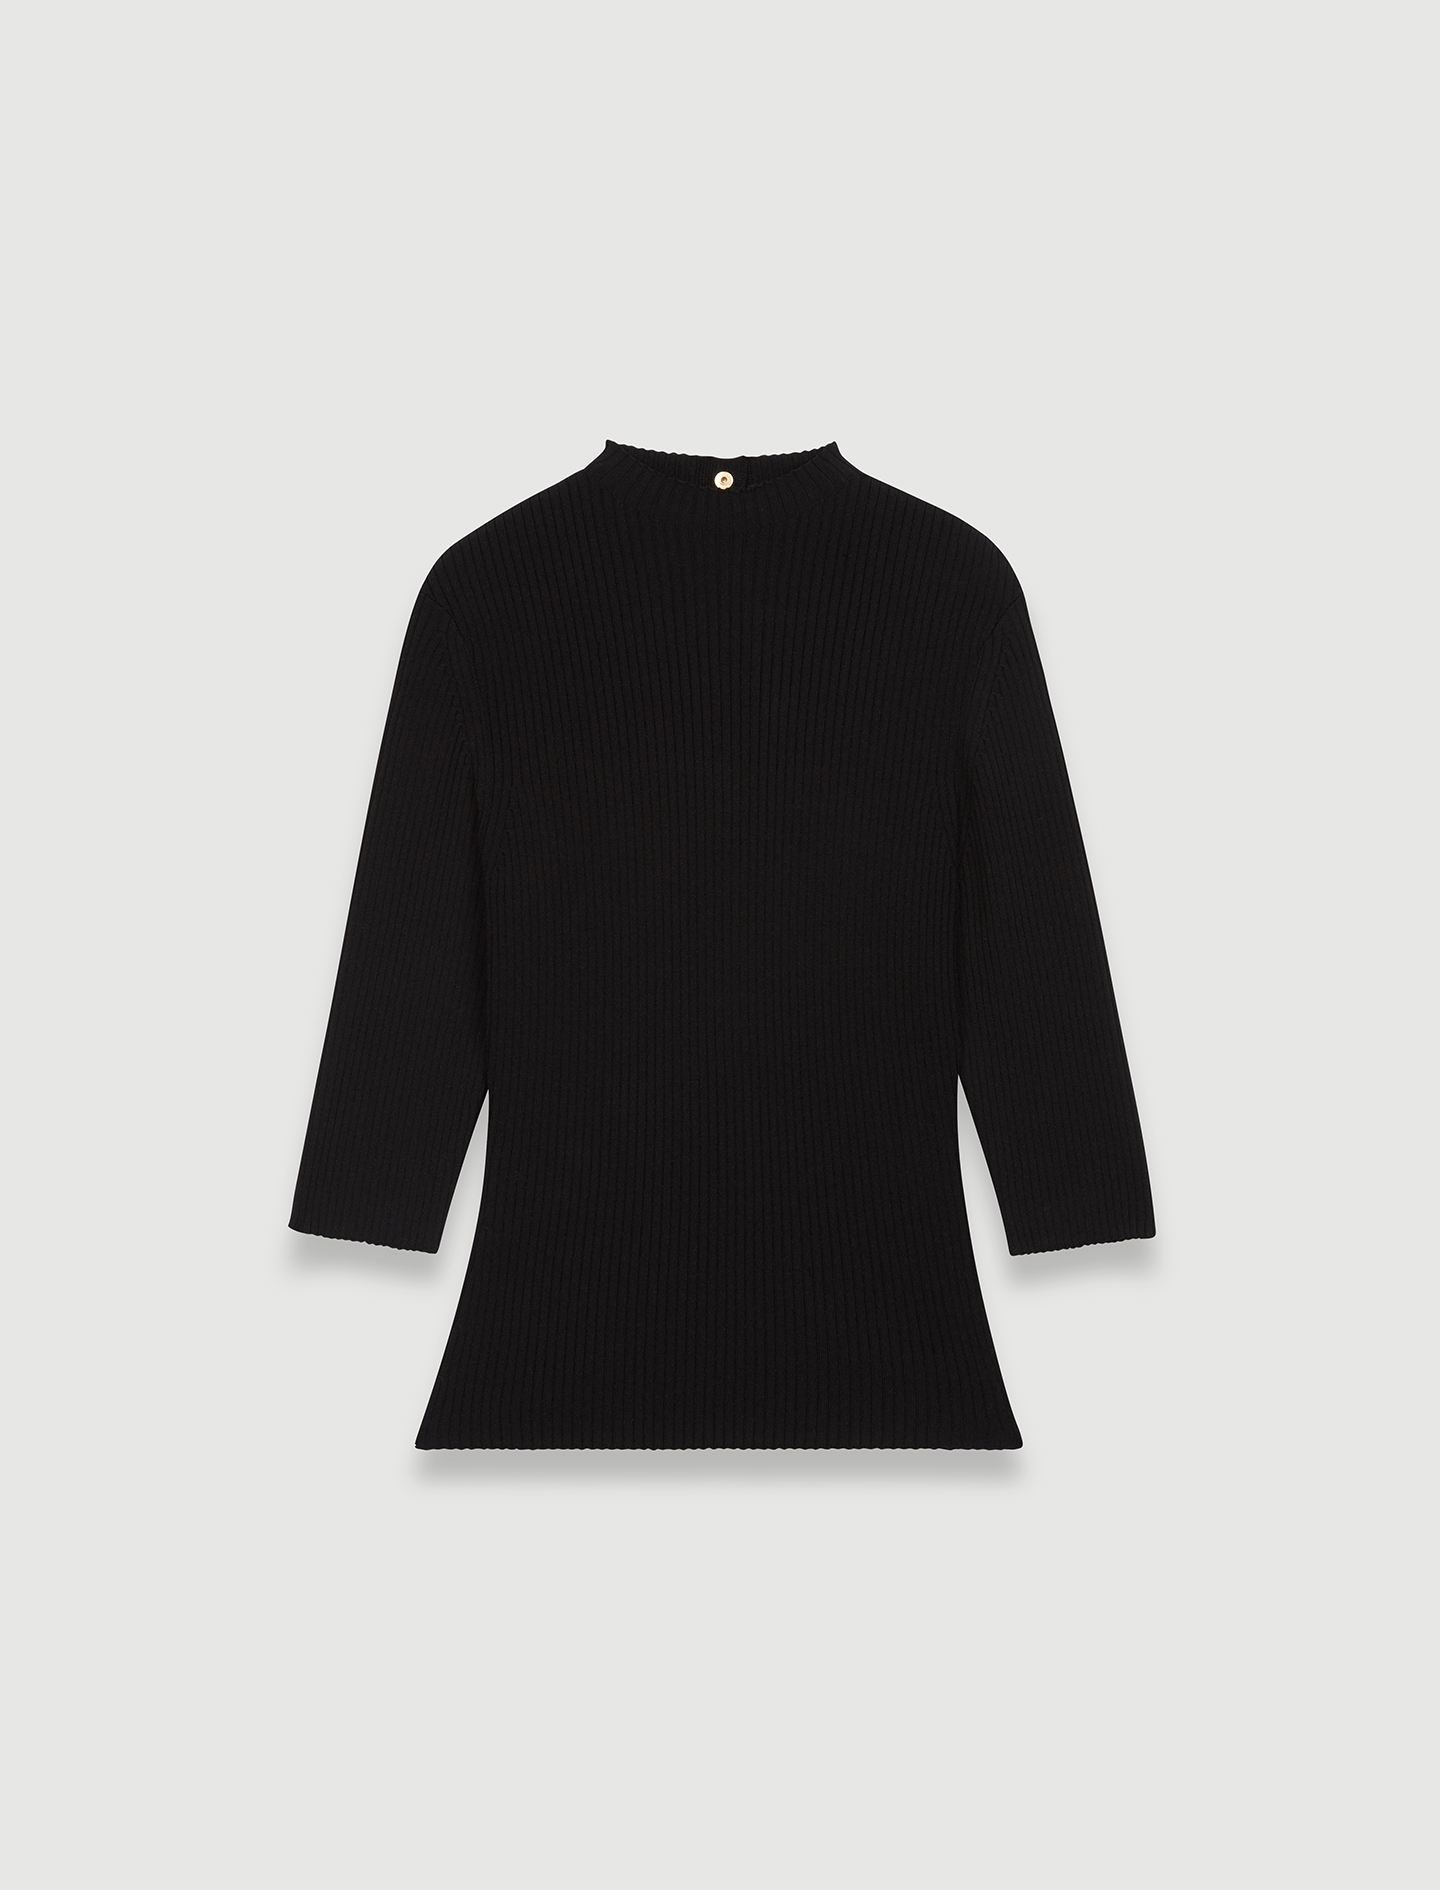 Sweater with fancy buttons on the back - Black